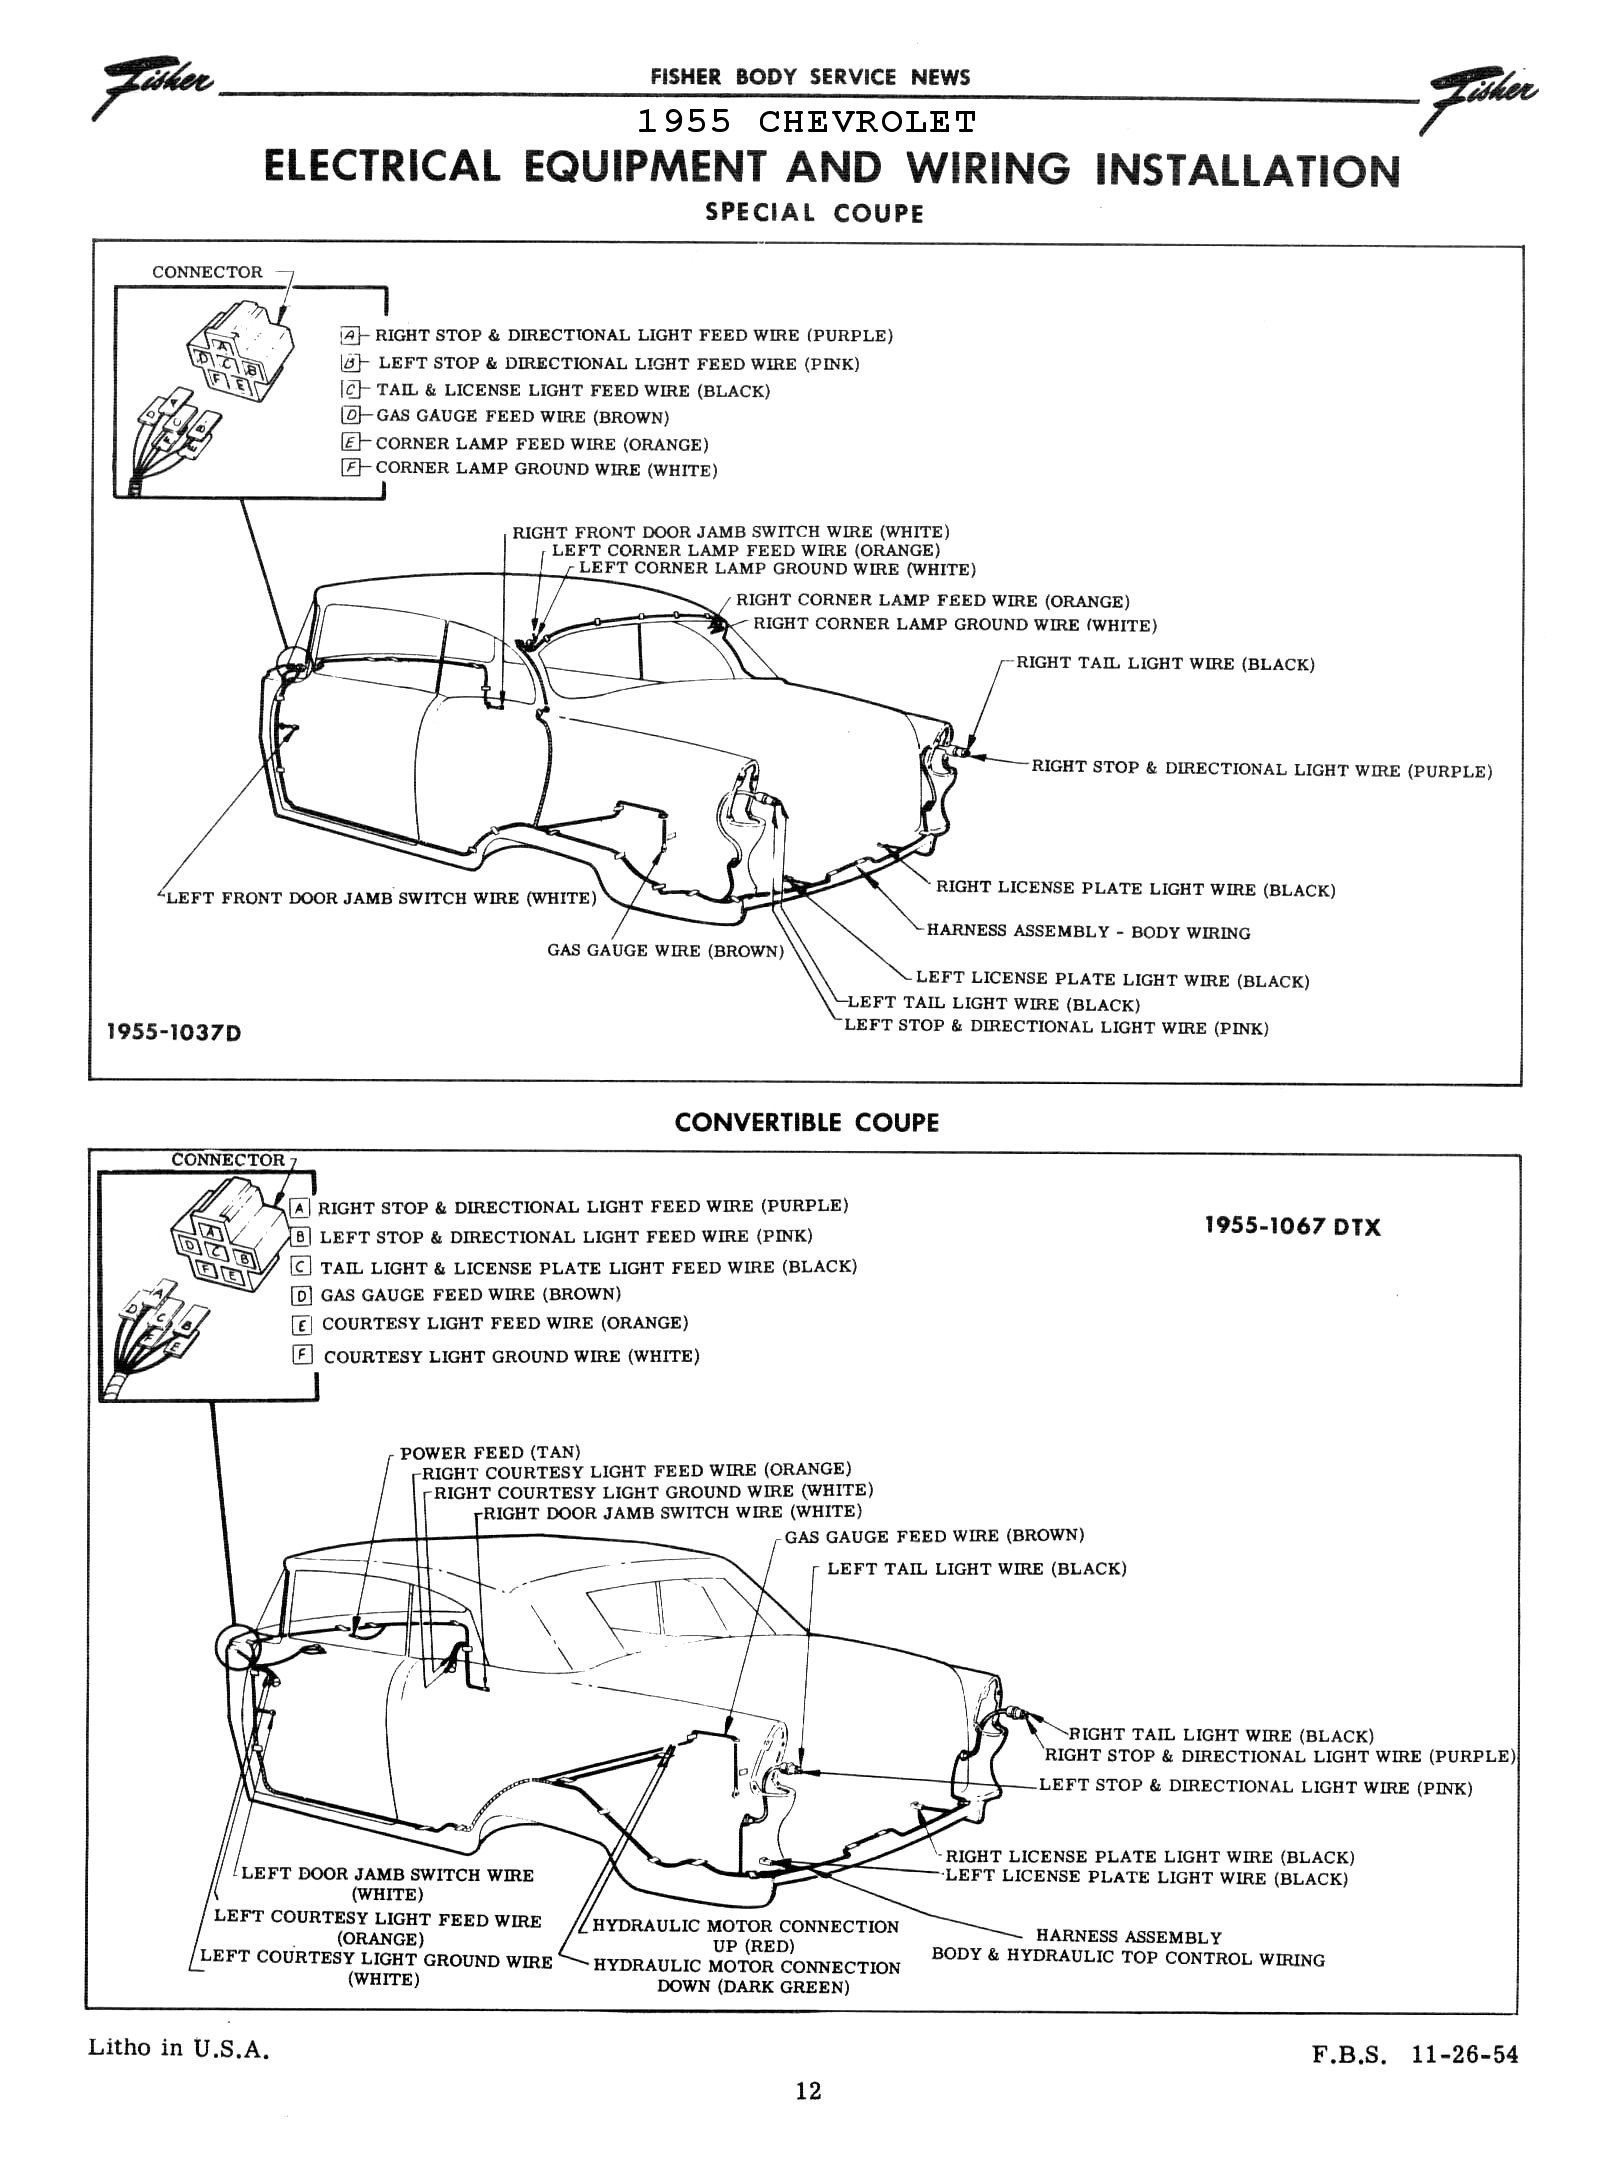 Chevy Wiring Diagrams Ford E 150 Starter Switch 1955 Body Diagram 3